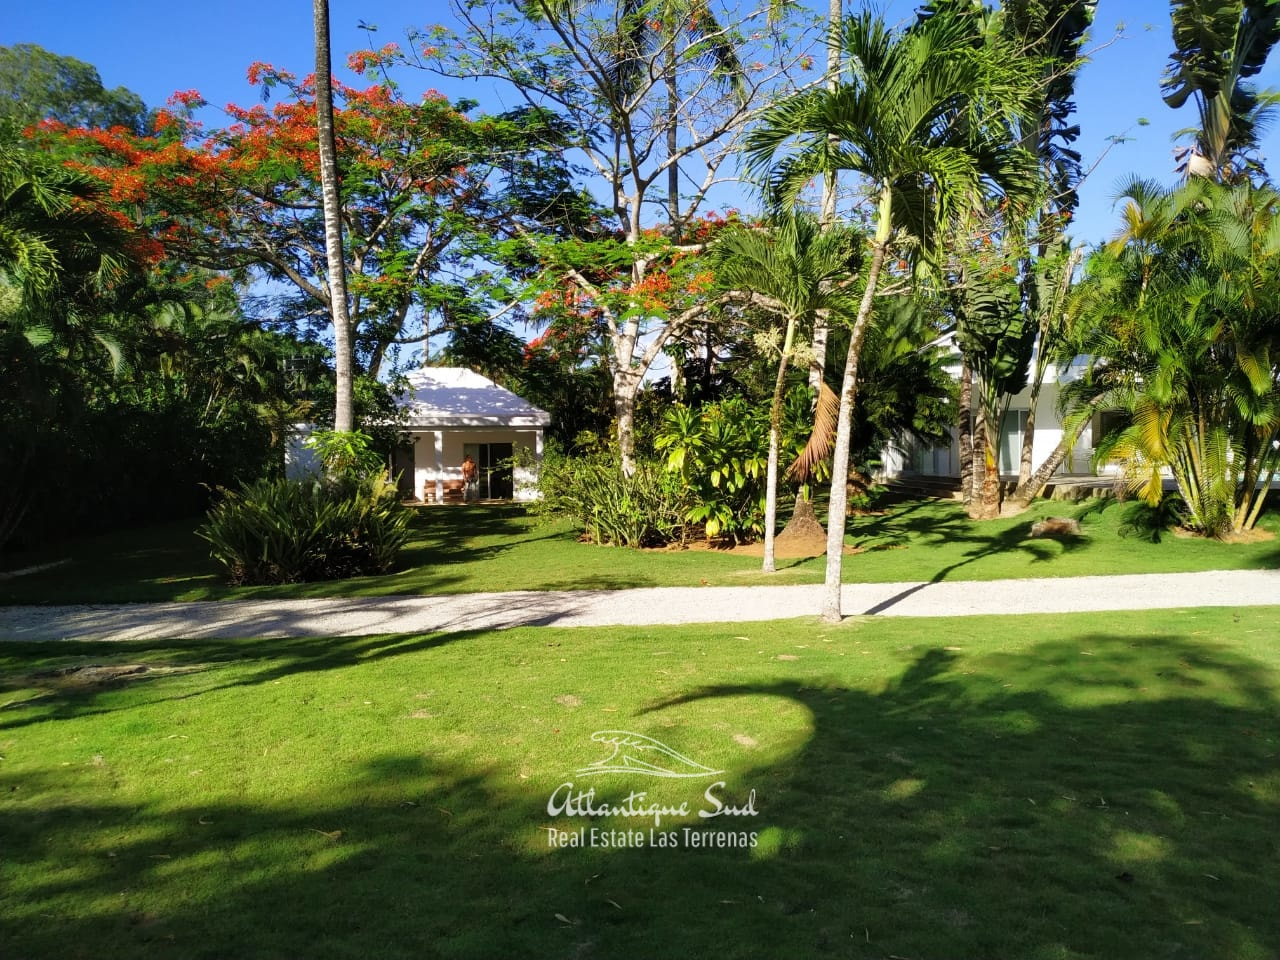 Guardian house villa for sale las terrenas-min.jpeg